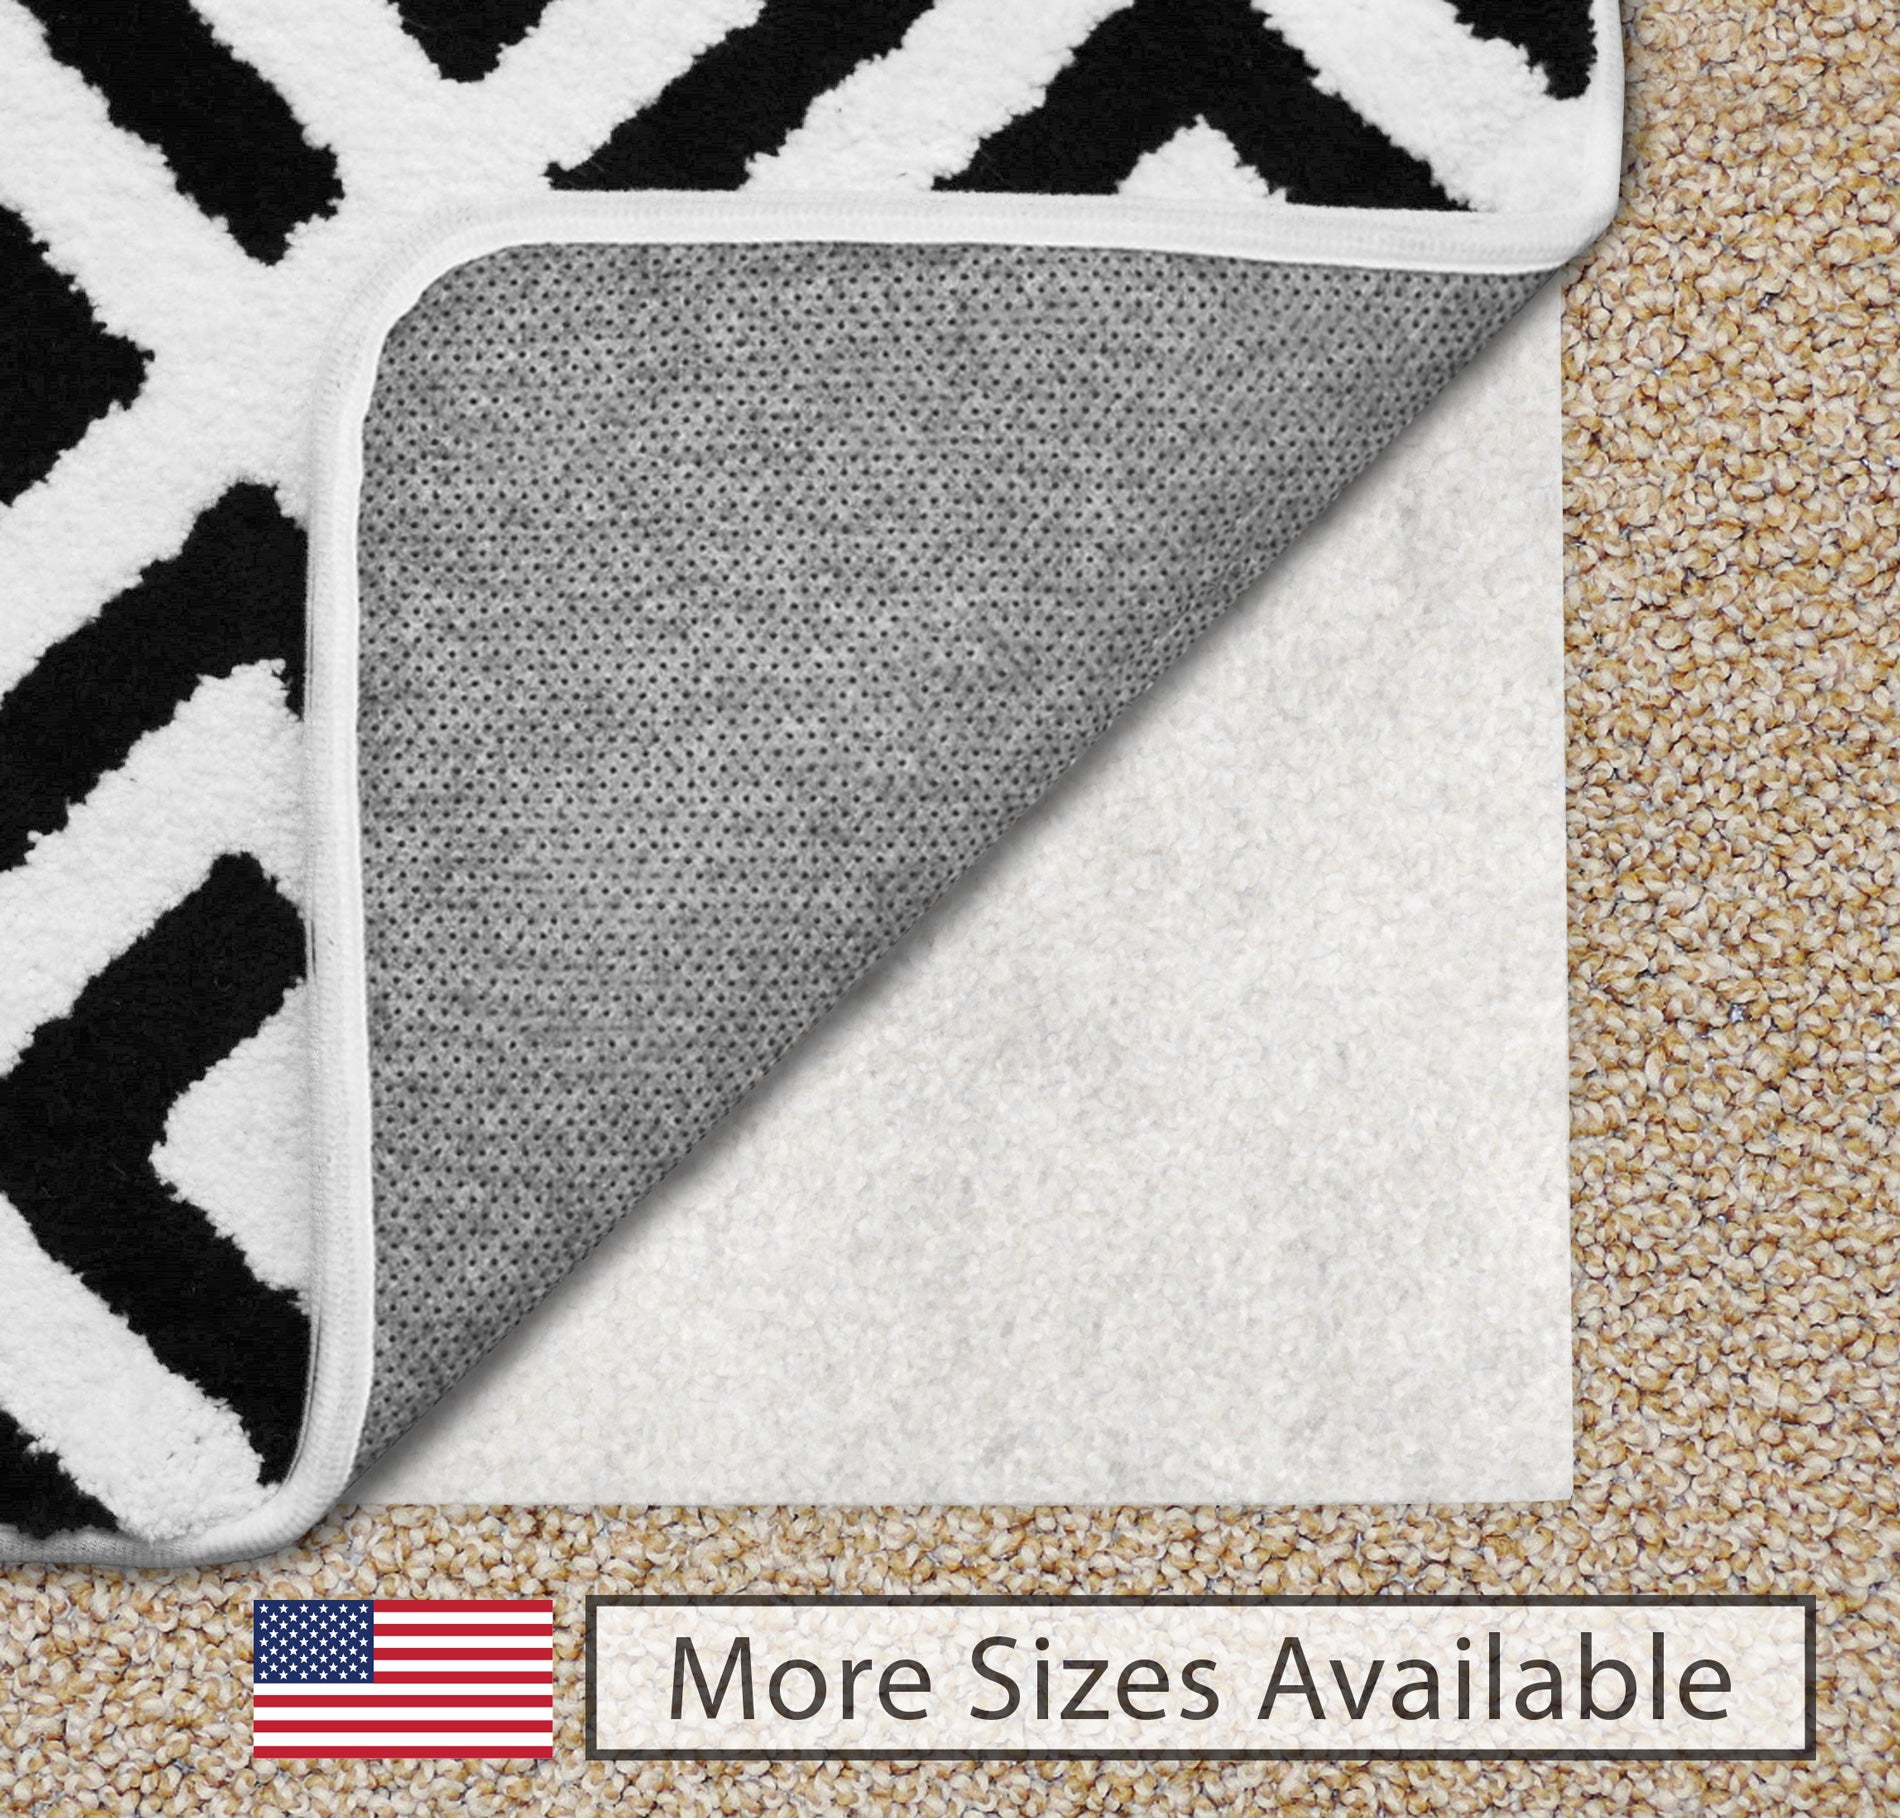 Gorilla Grip The Original Gorilla Grip Area Rug Pad For